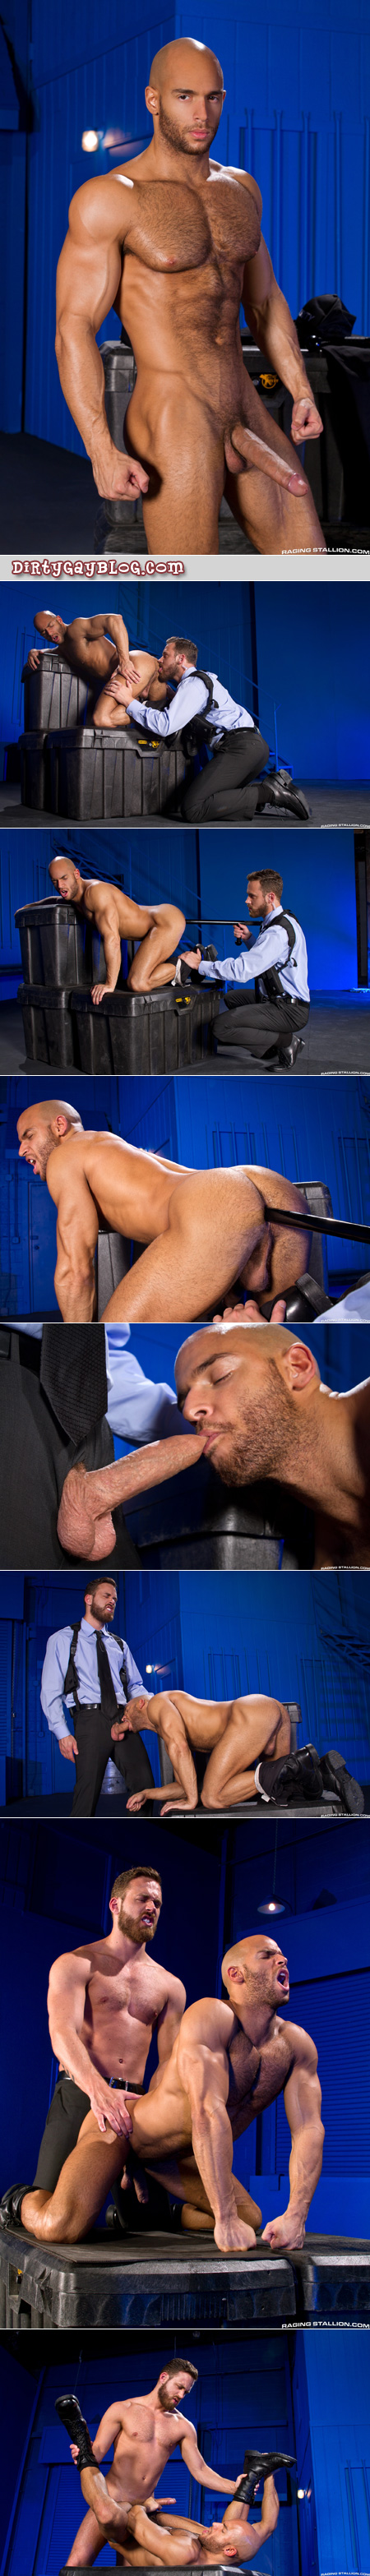 Muscular security guard uses his nightstick to penetrate a hung bottom before fucking him with his uncut cock.